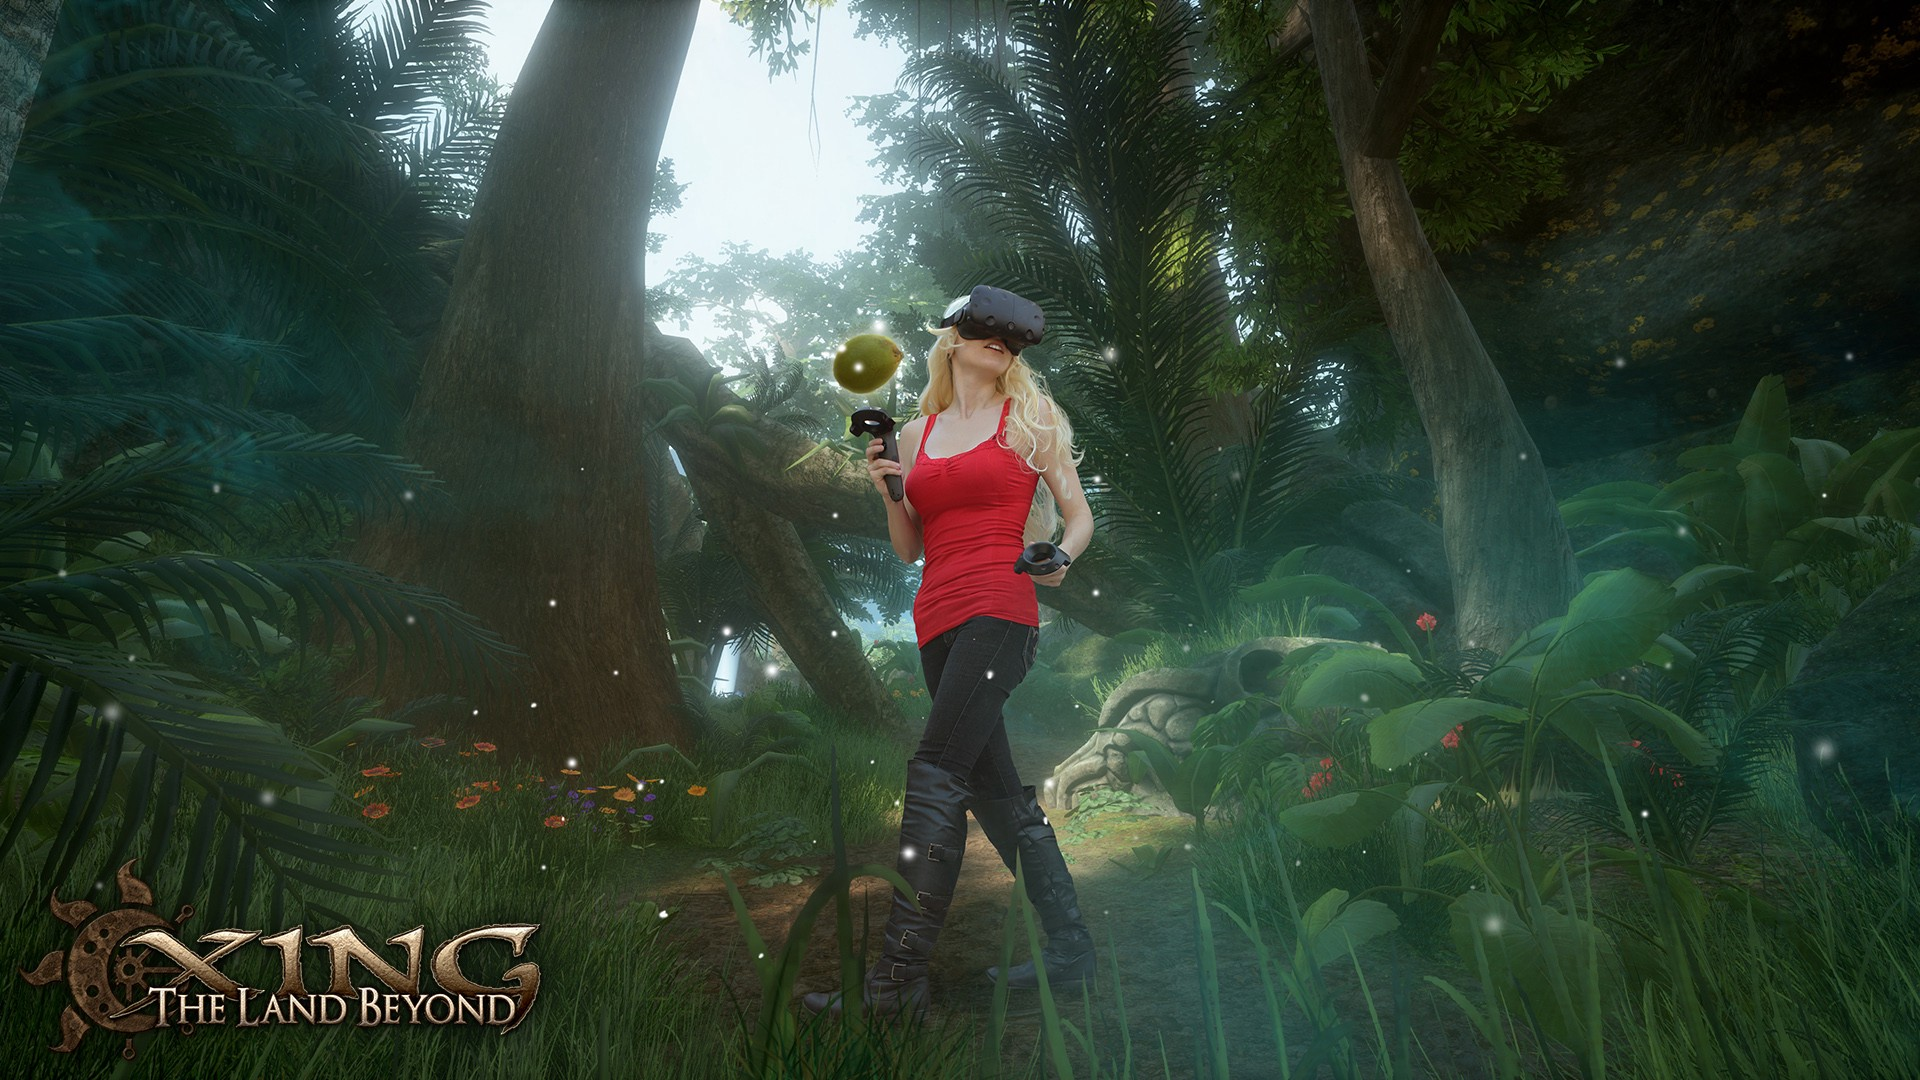 How We Brought XING The Land Beyond To HTC Vive White Lotus